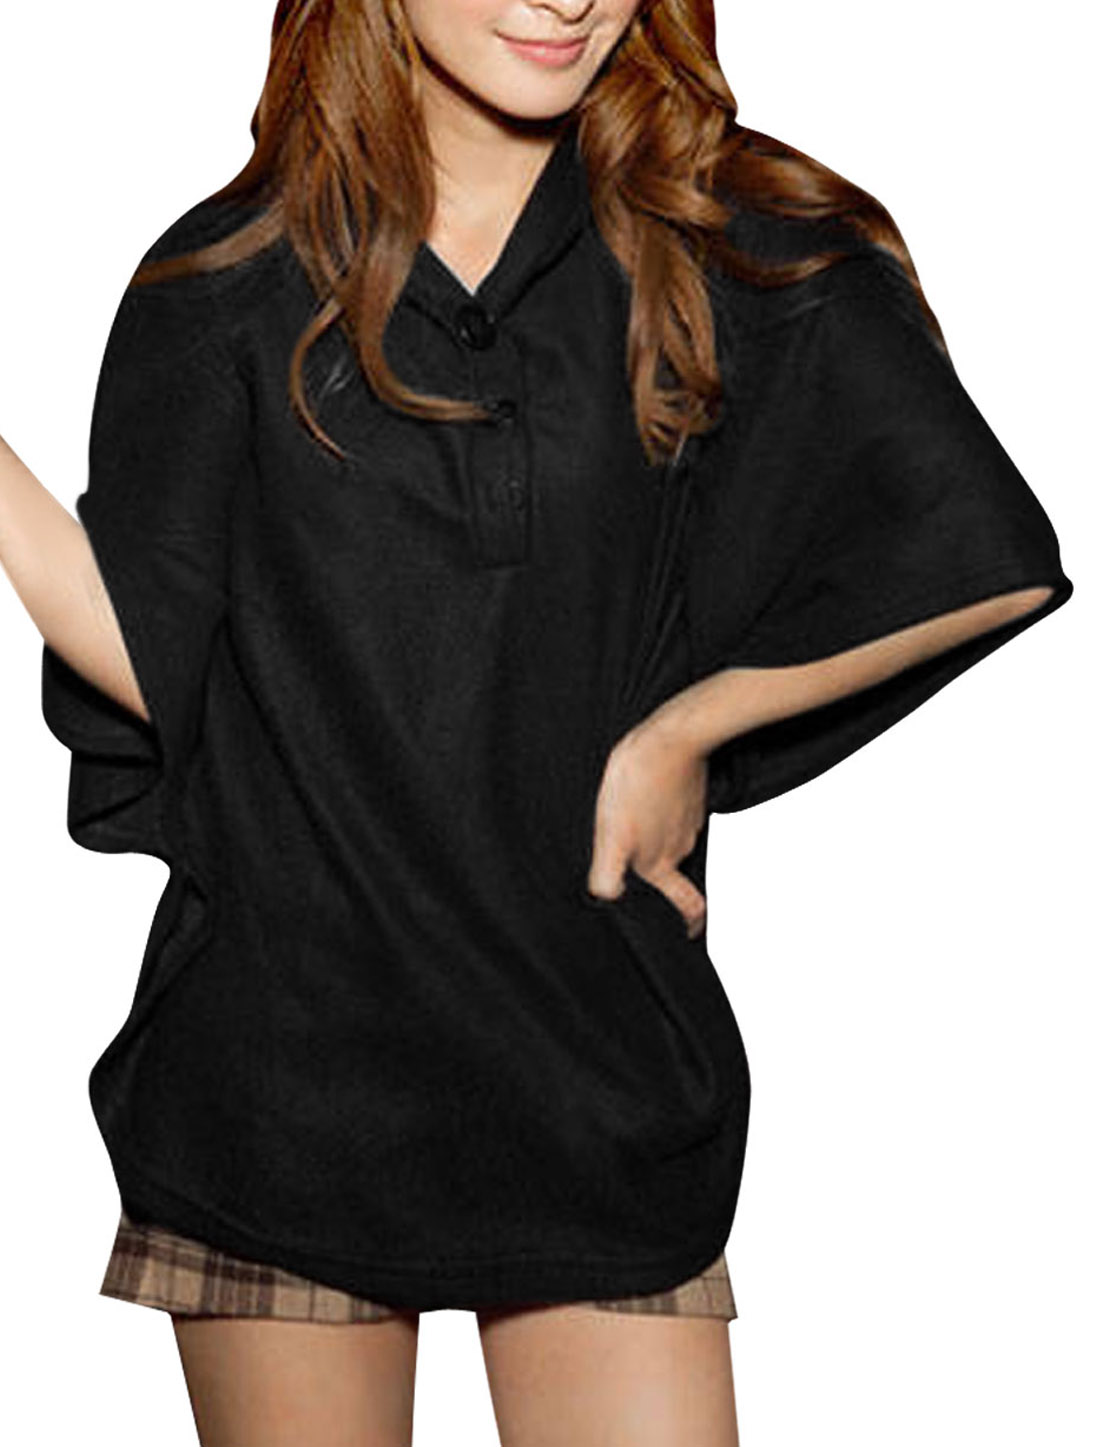 Women Hooded Batwing Sleeve NEW Poncho Coat Black S